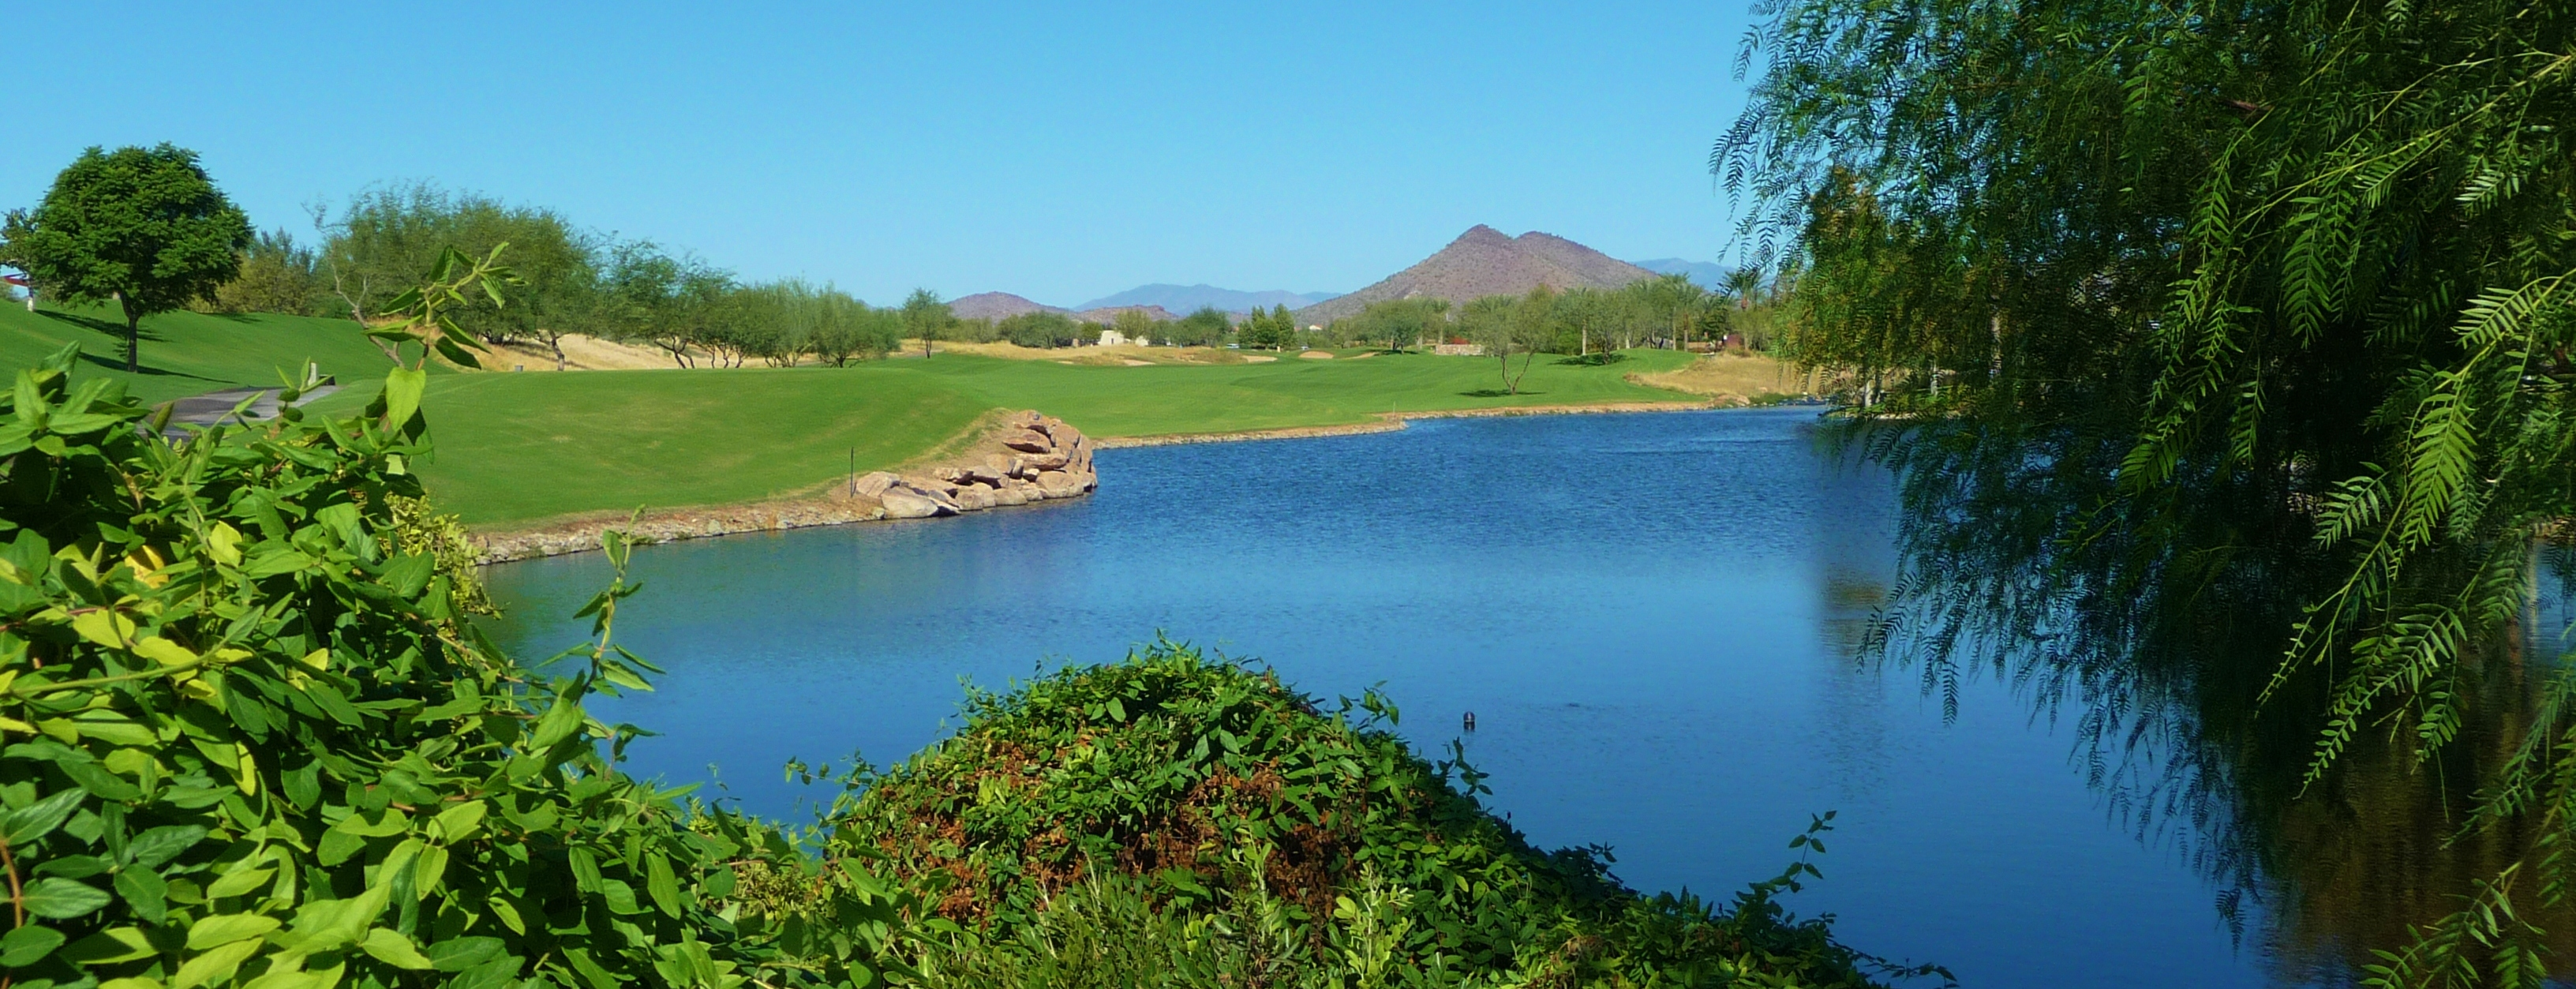 Friedman Realty Associates, Trilogy At Vistancia, view of 18th Hole Fairway